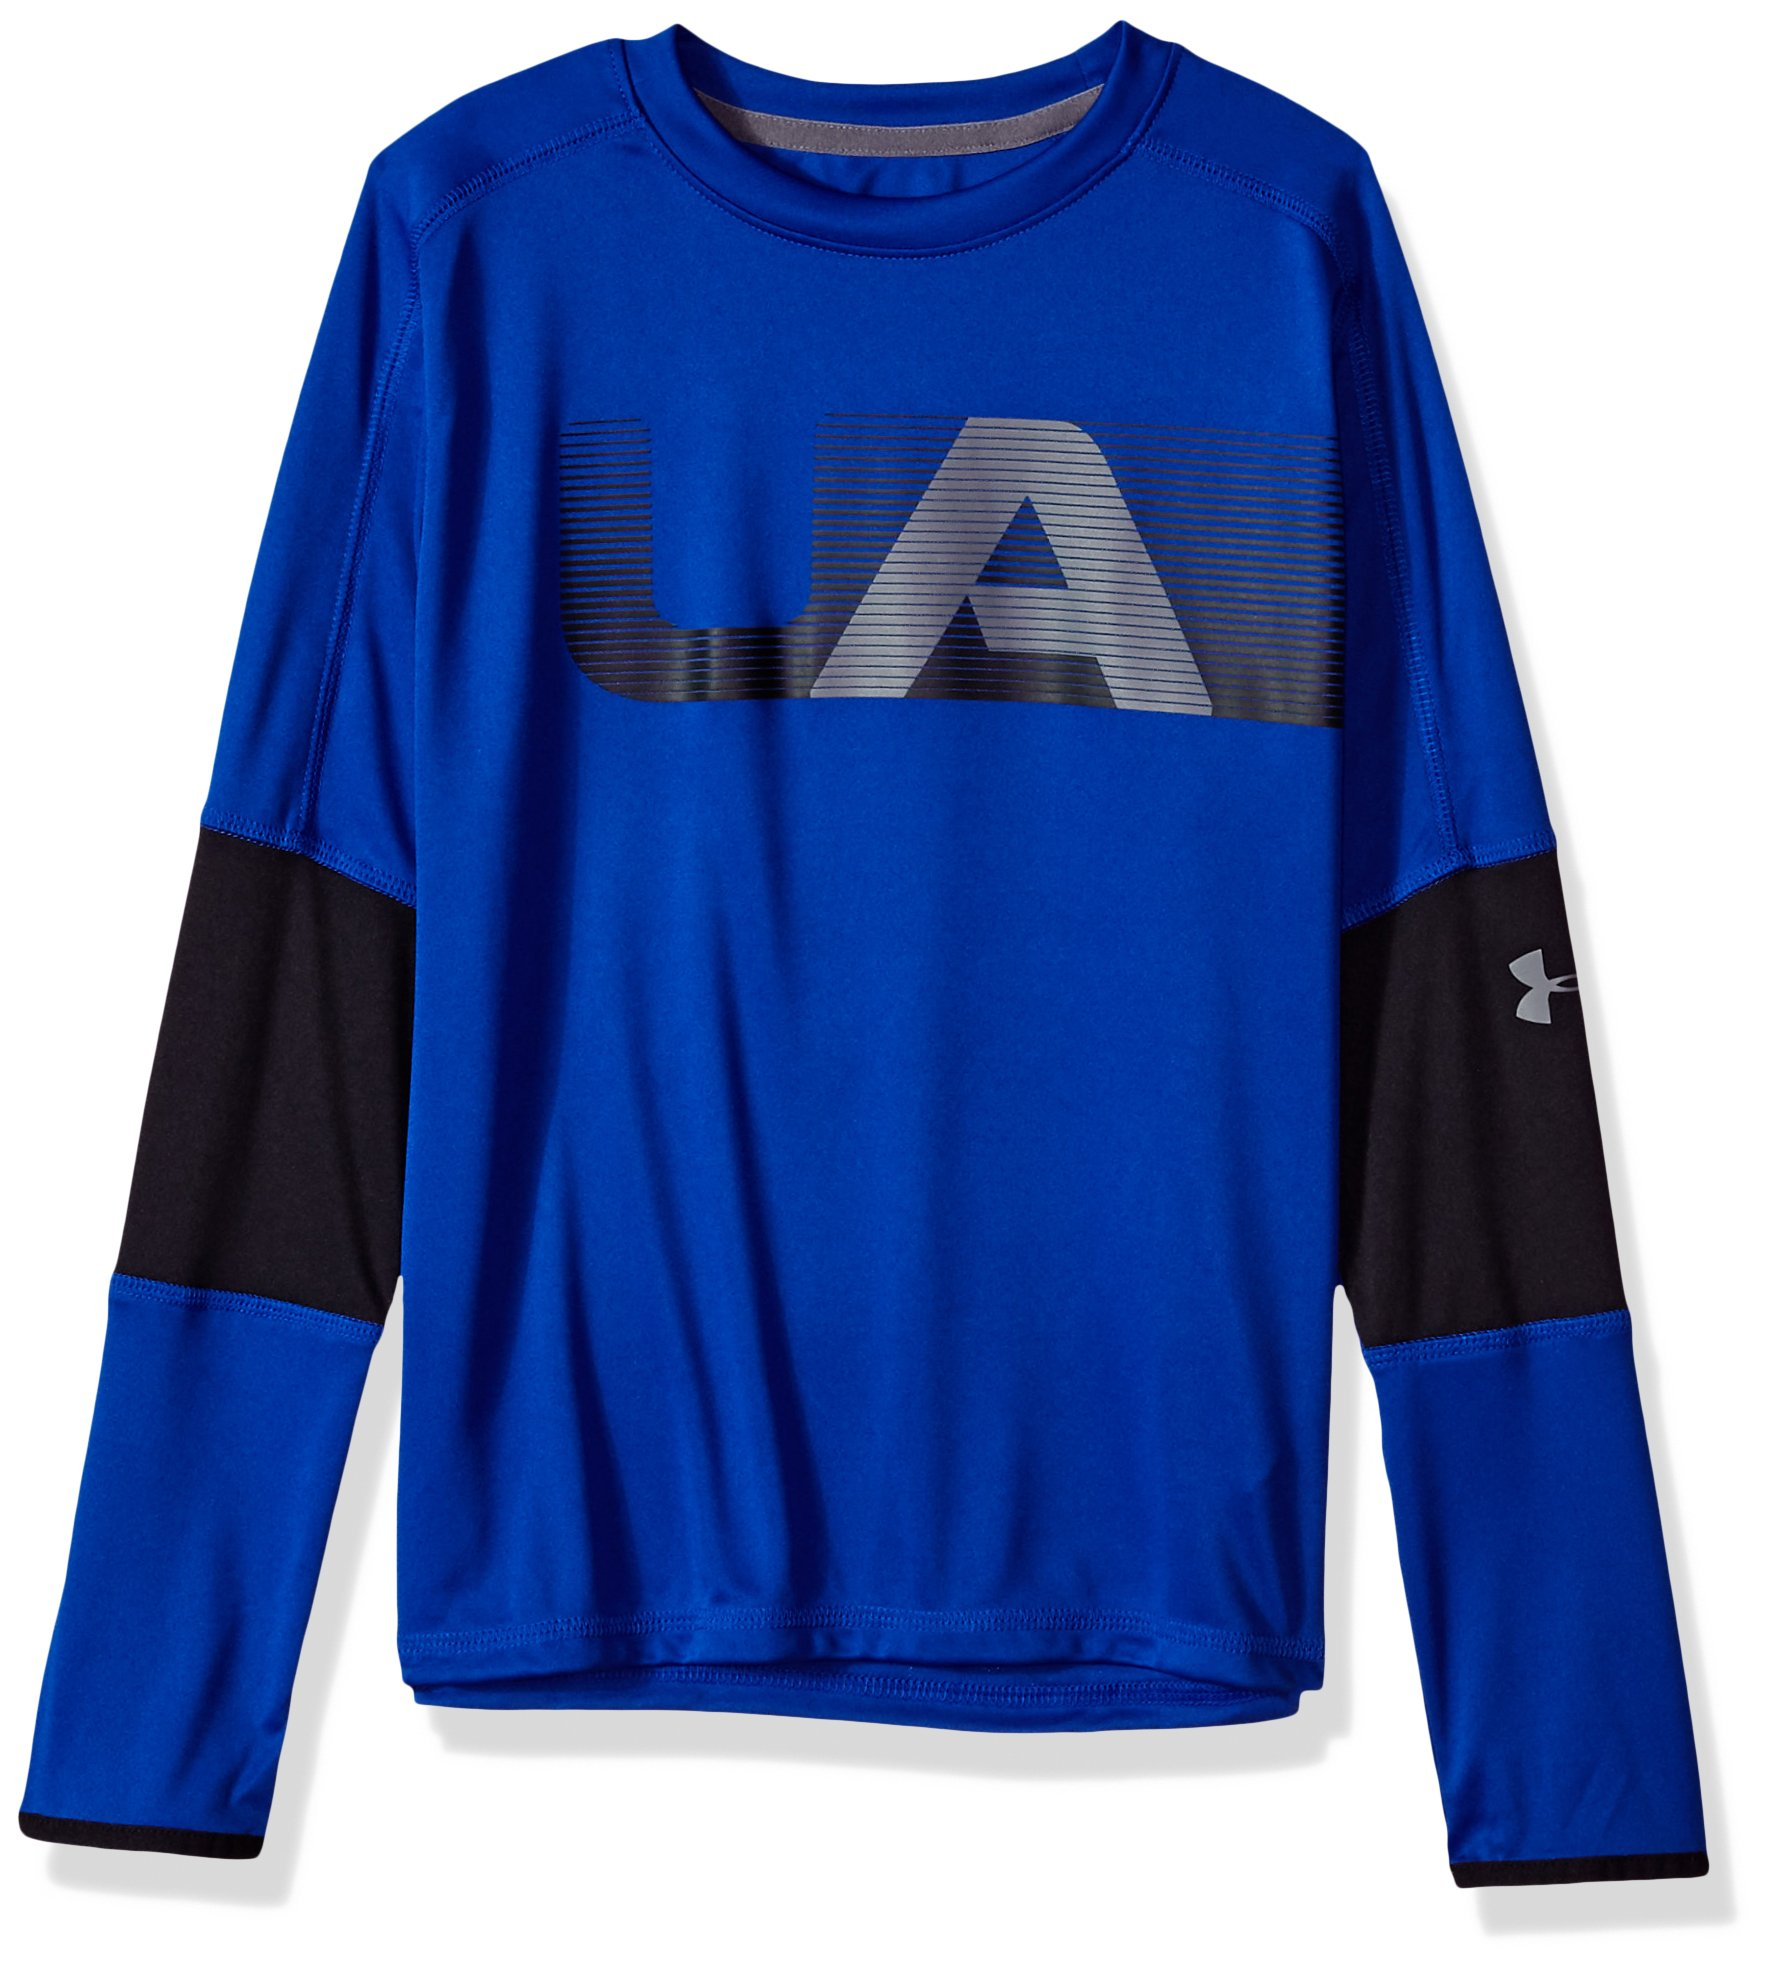 Under Armour Boys Tech Long sleeve Tee, Royal (400)/Graphite, Youth Medium by Under Armour